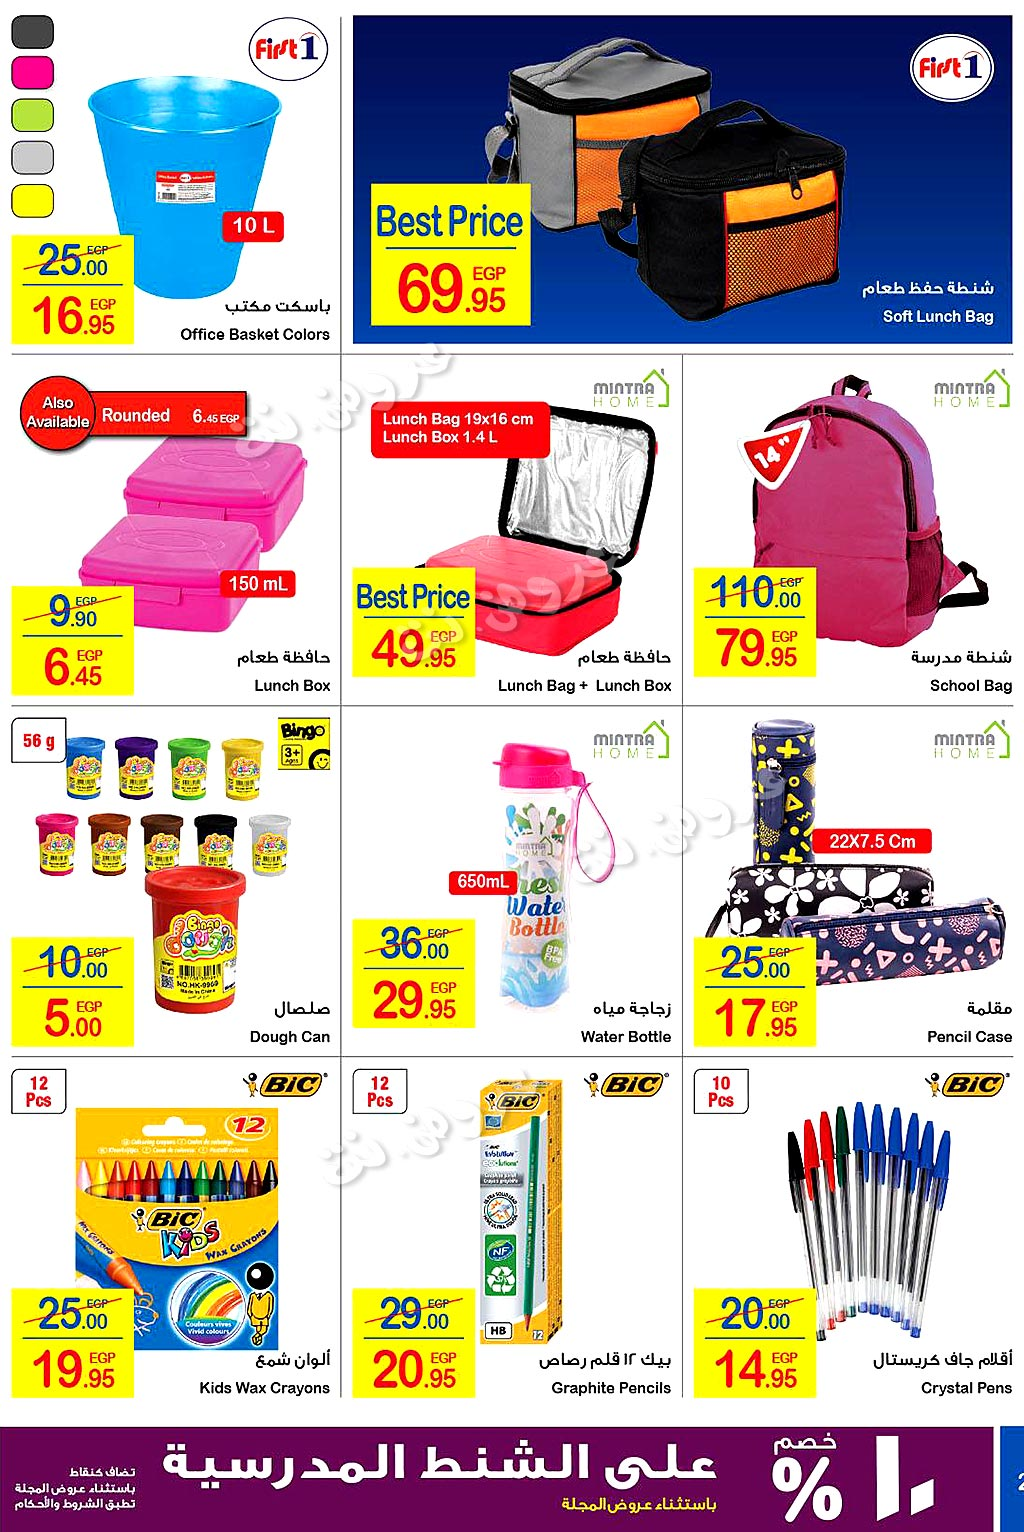 carrefour-market offers from 14aug to 31aug 2019 page number 2 عروض كارفور ماركت من 14 أغسطس حتى 31 أغسطس 2019 صفحة رقم 2